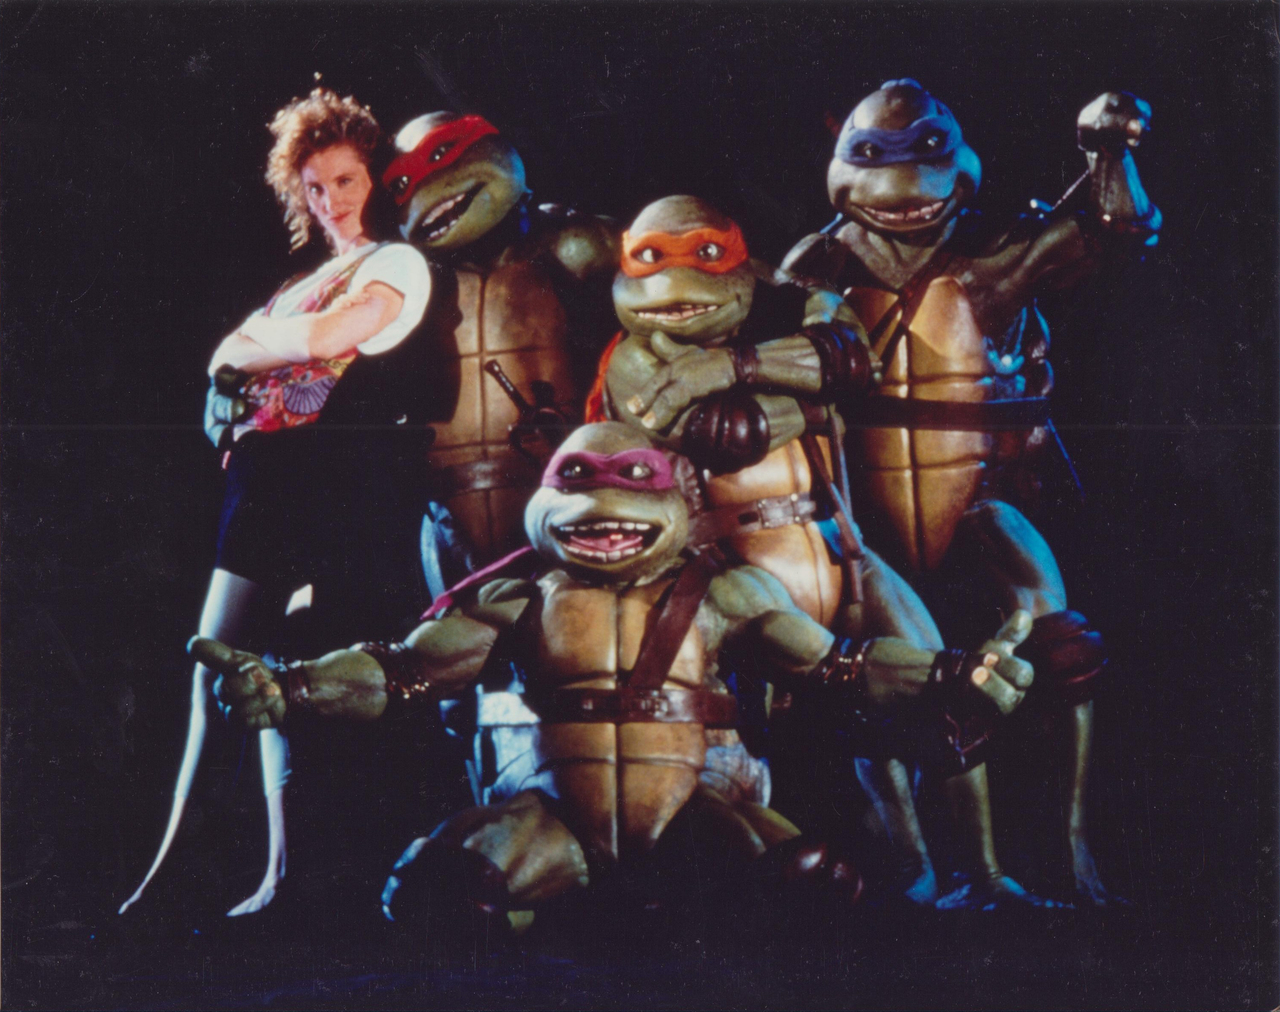 Teenage Mutant Ninja Turtles 2014 Movie Review TMNT Original Movie 1990 April O'Neil